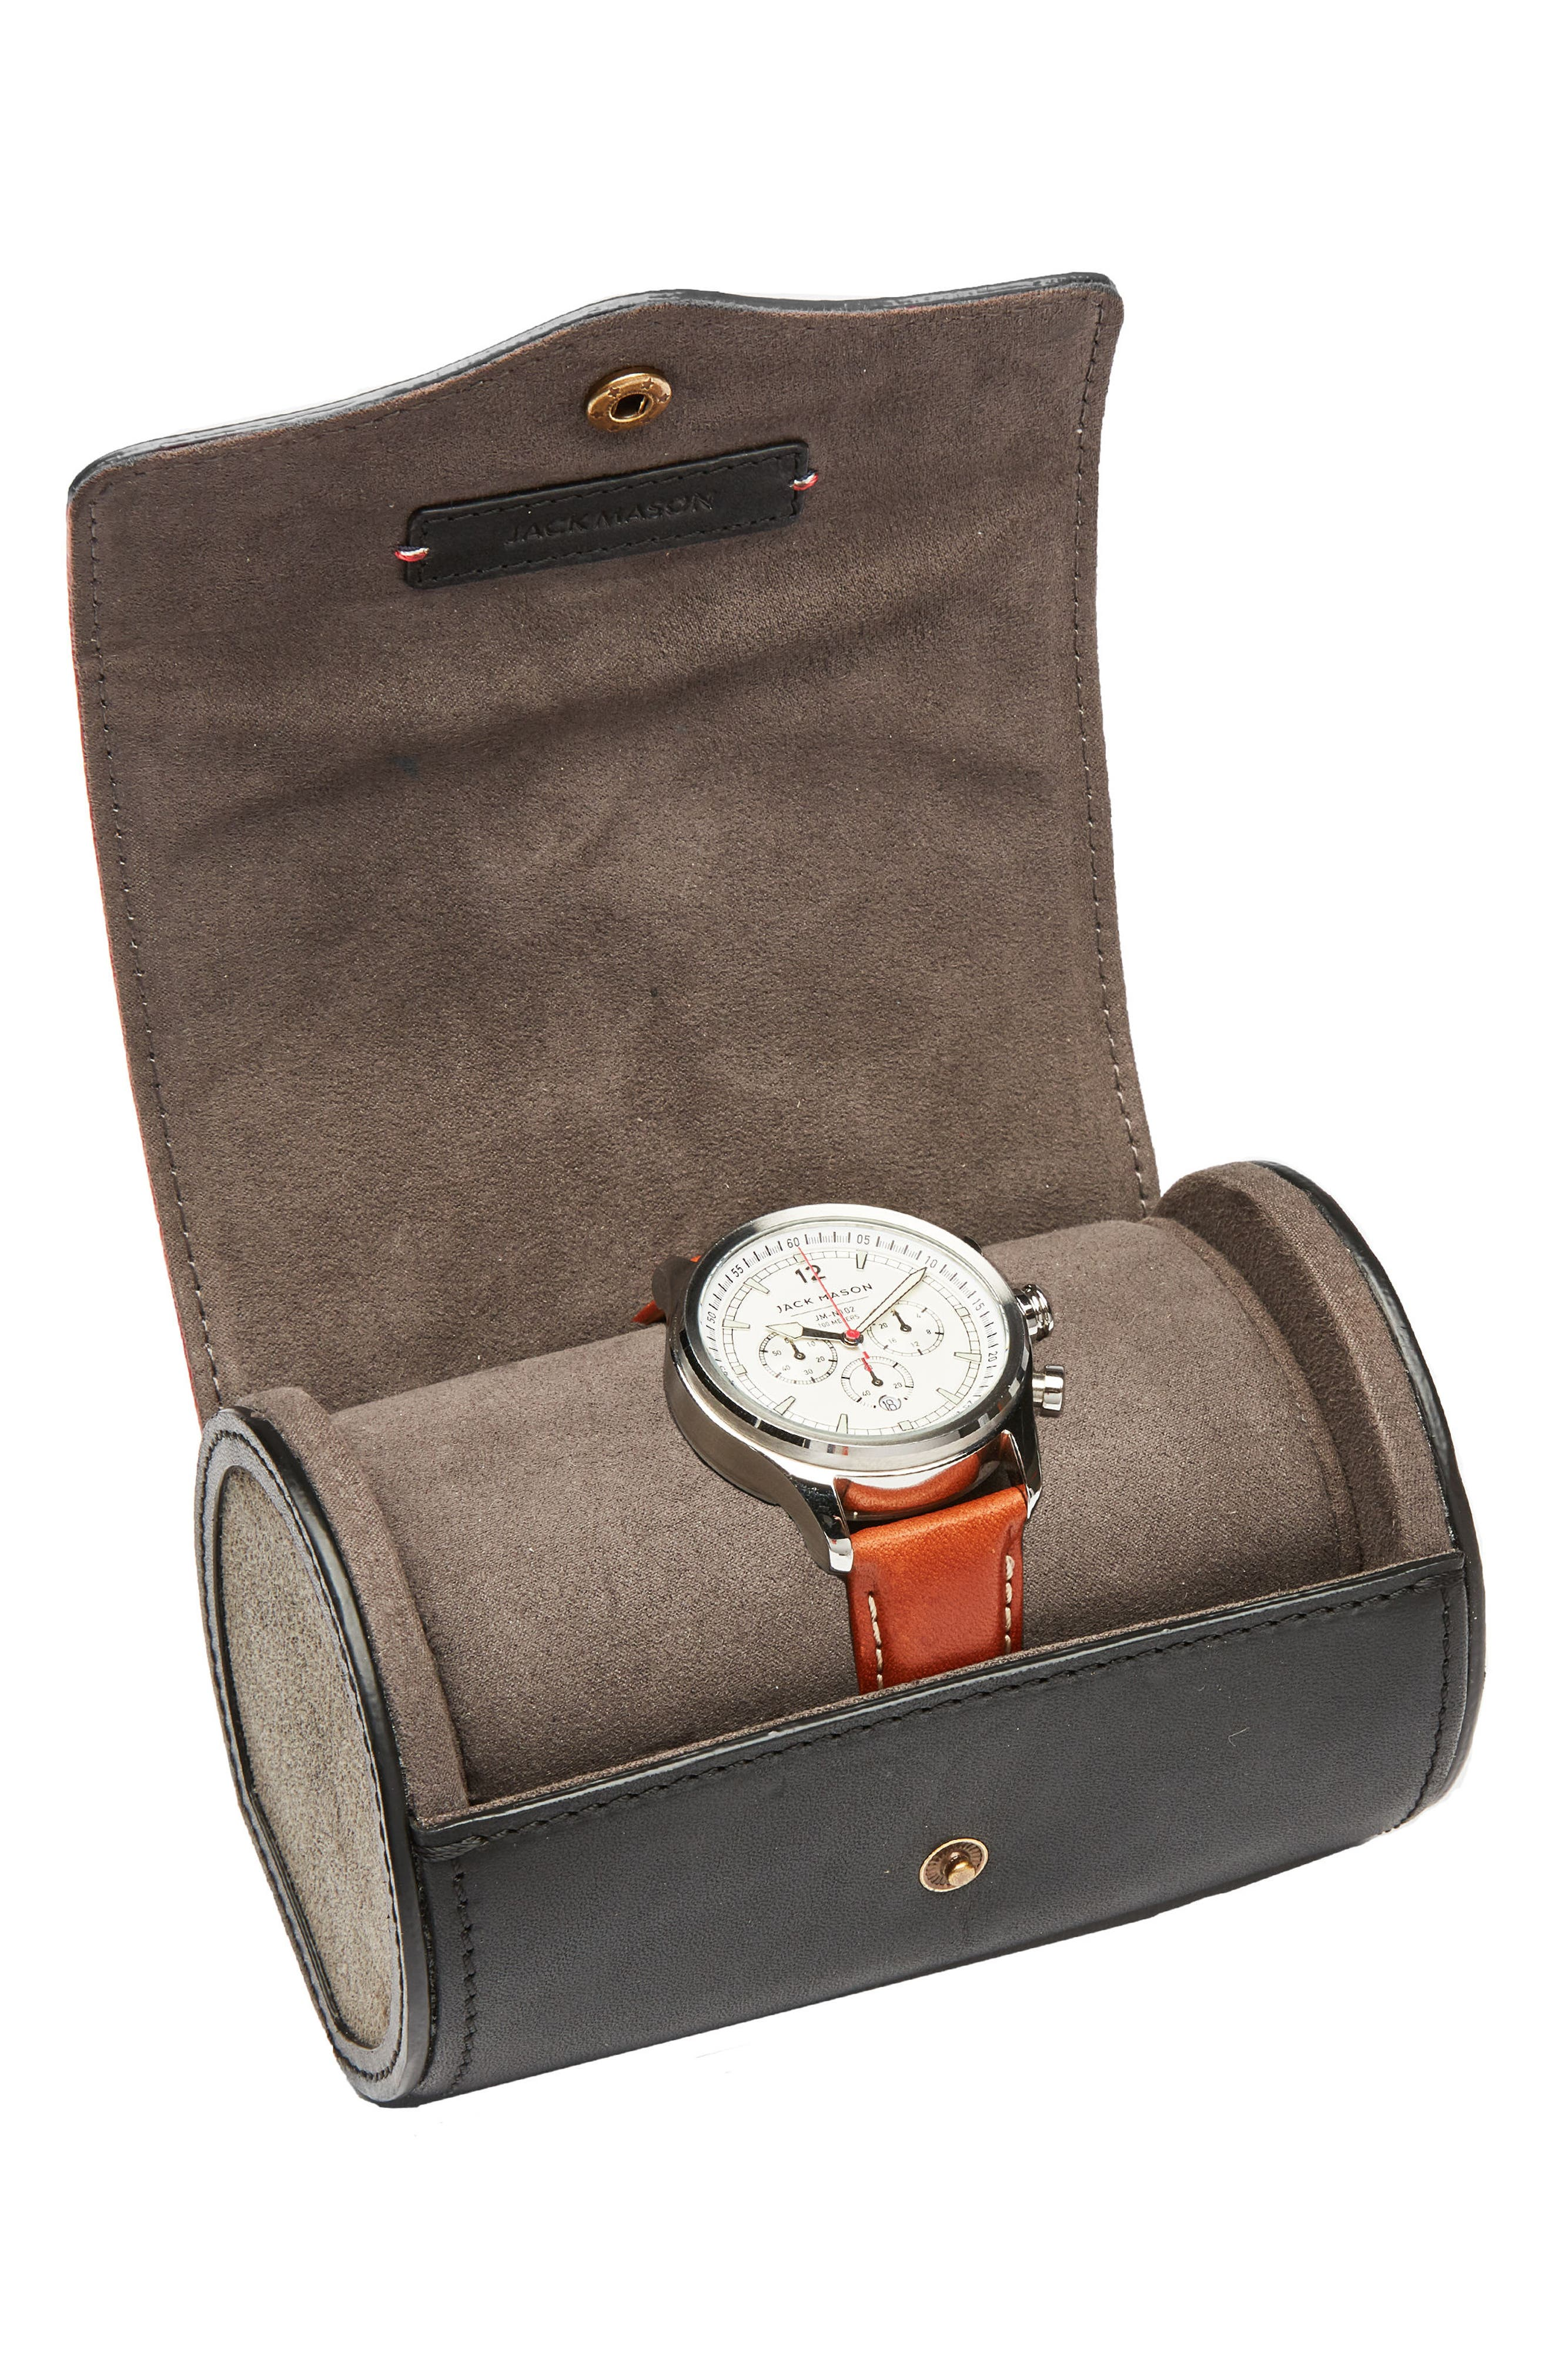 Watch Roll Case,                             Alternate thumbnail 2, color,                             001